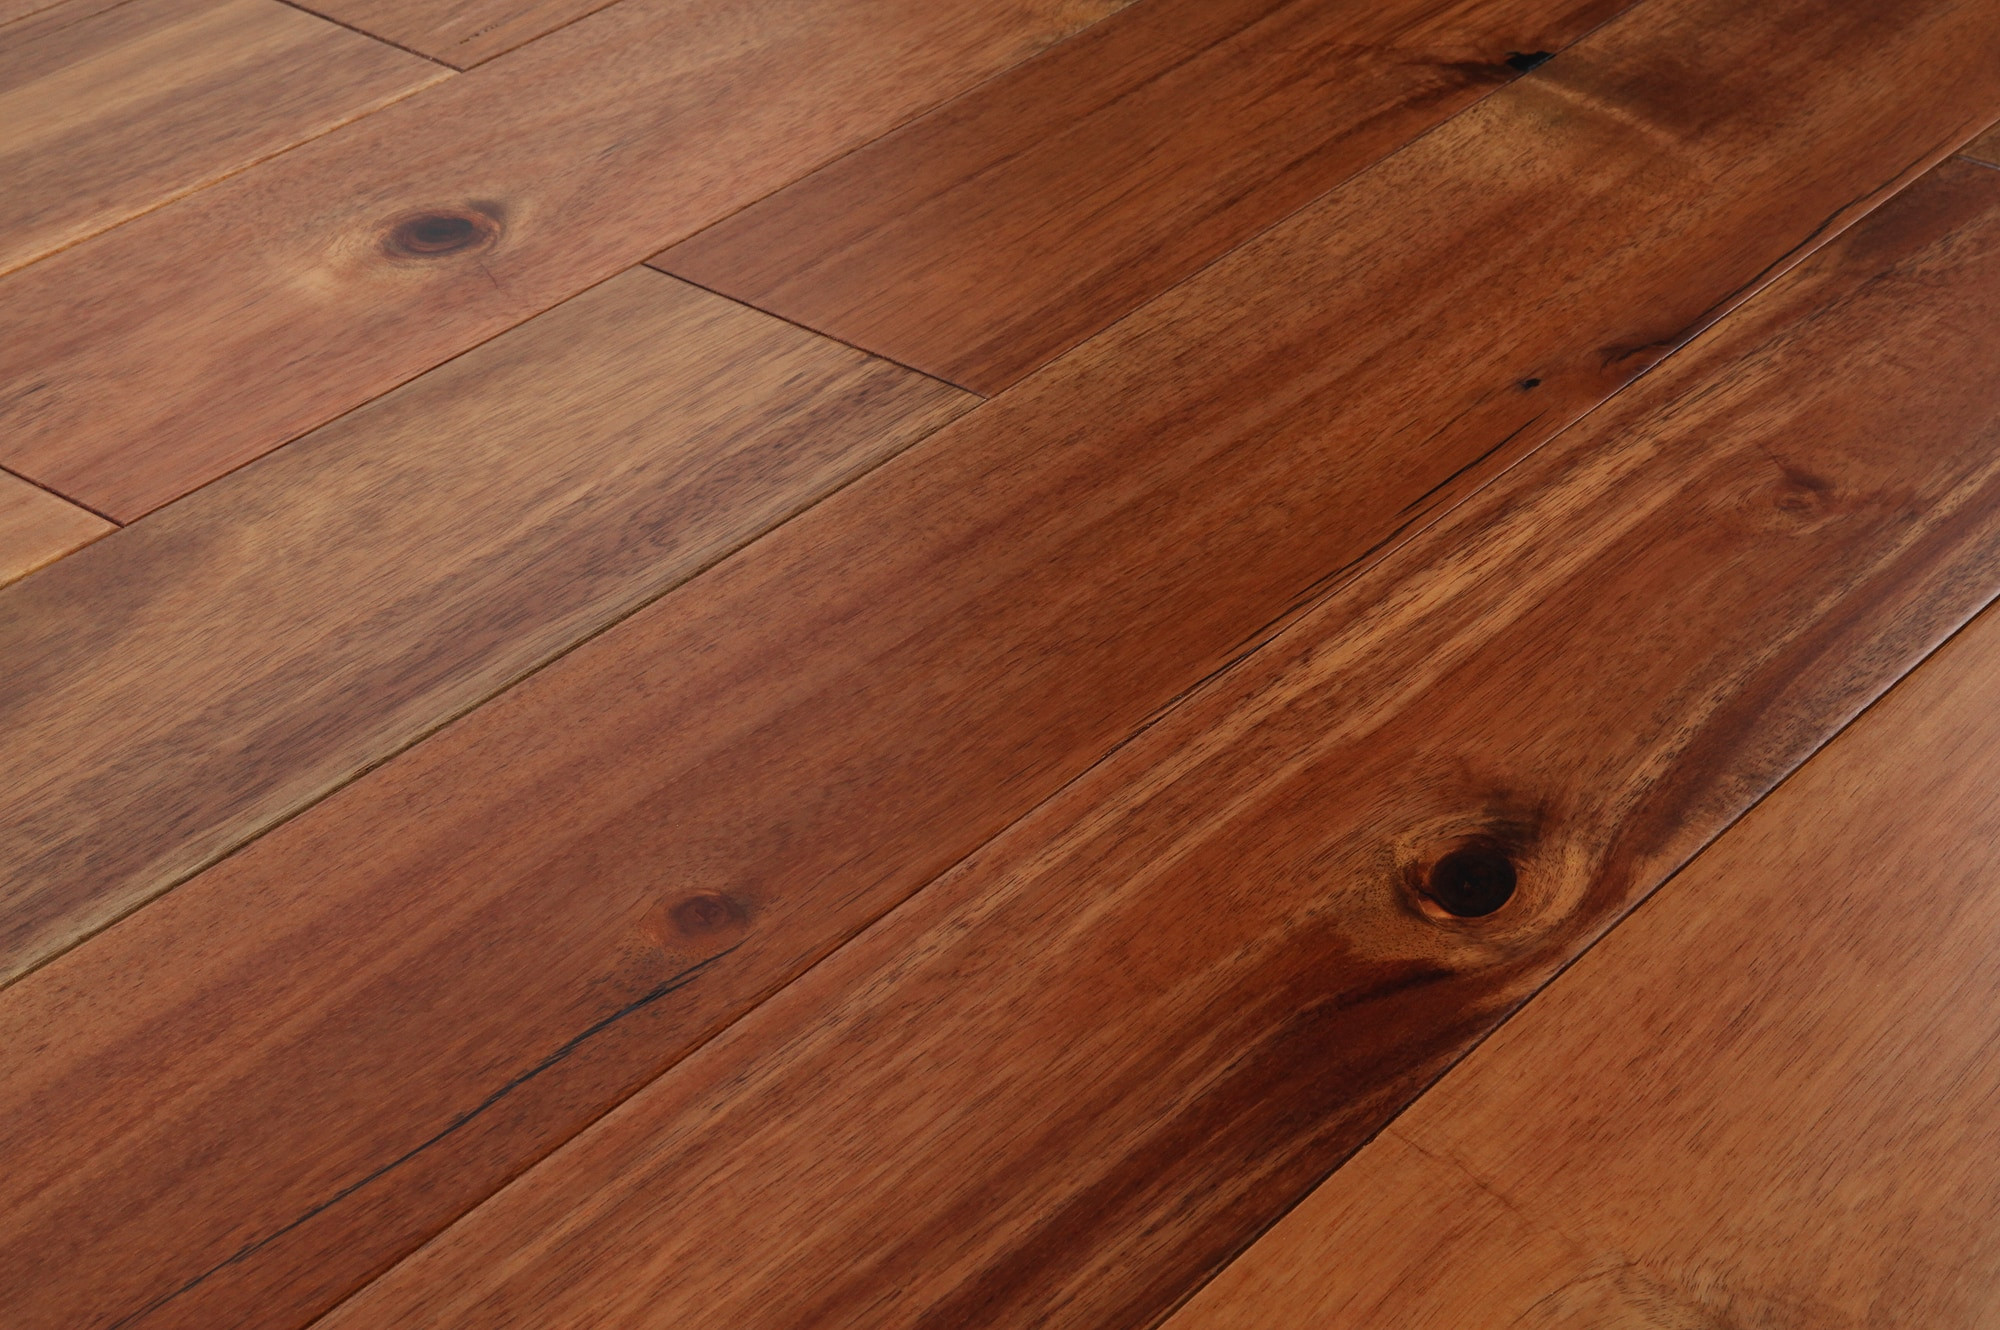 Mazama Smooth Acacia Hardwood Flooring Of Hardwood New Acacia Hardwood for Palmer Donavin Flooring Training Outline 1 Hardwood Flooring Construction solid • Typically 3 4 Thick but Can Be Found In Other Thicknesses Acacia Species